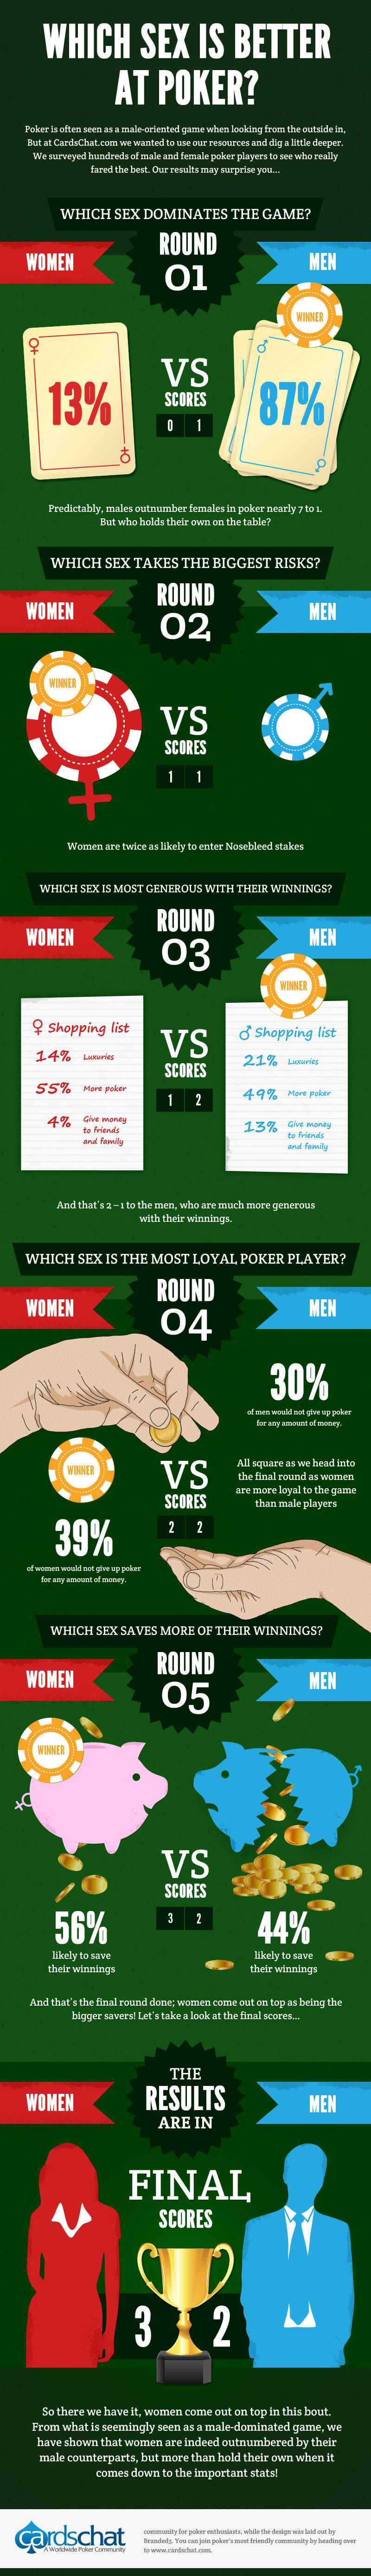 Poker Stats: Battle of the Sexes